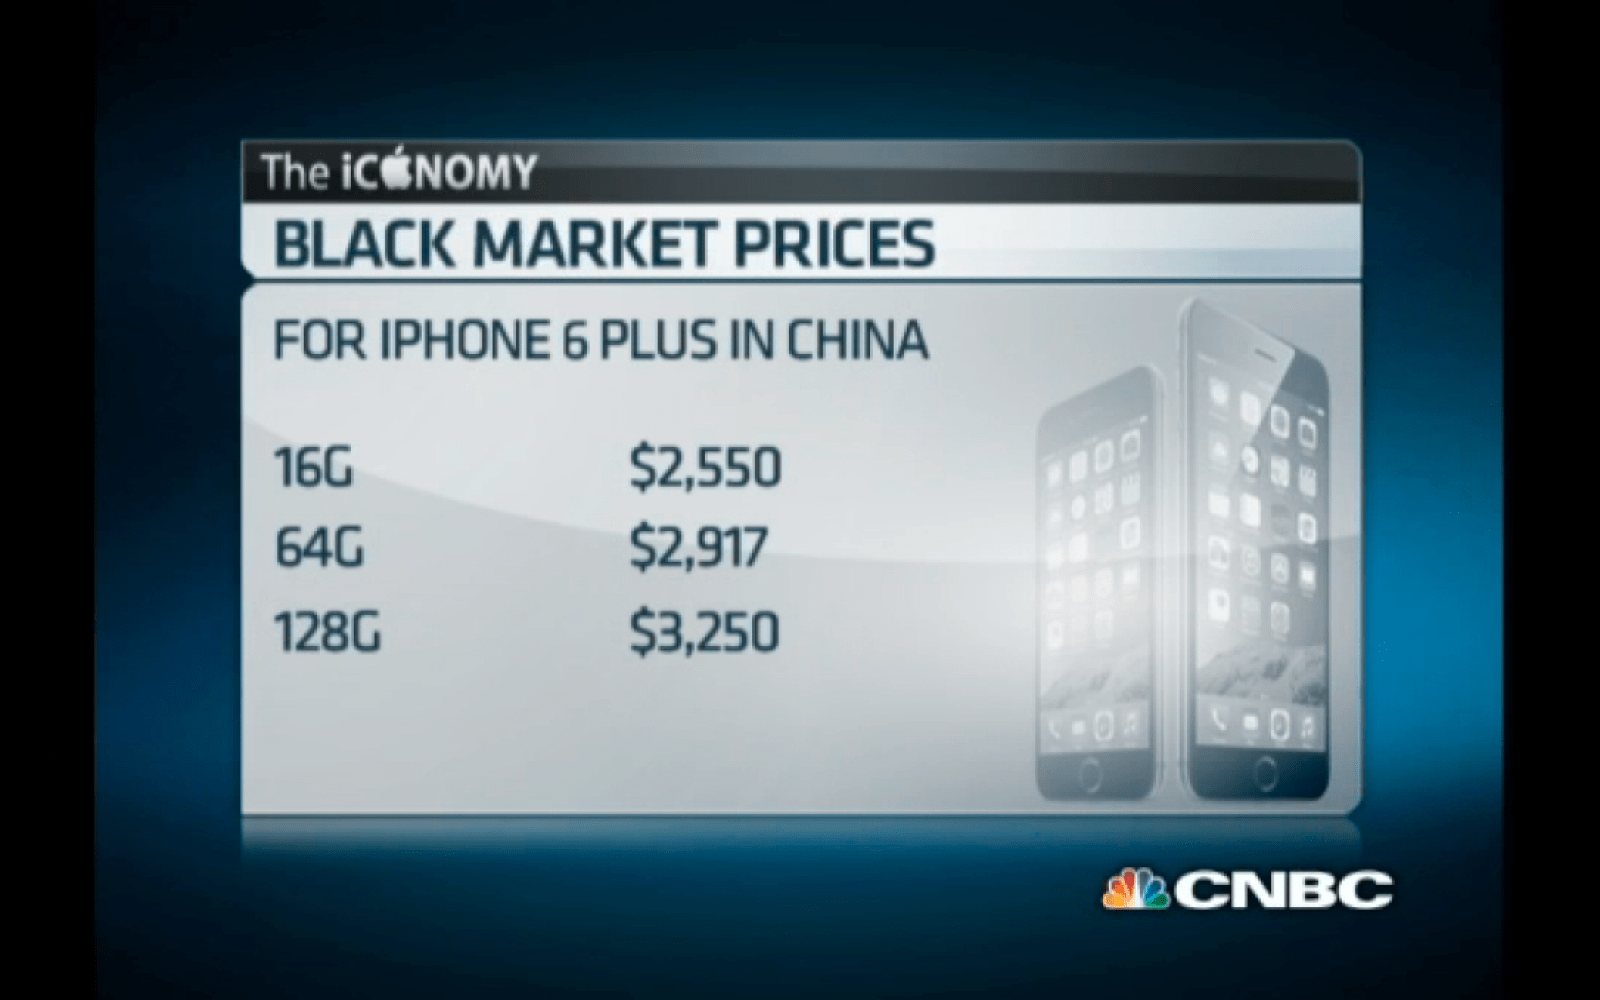 Black market iPhone 6 prices fall as Chinese regulators say final approvals are coming soon